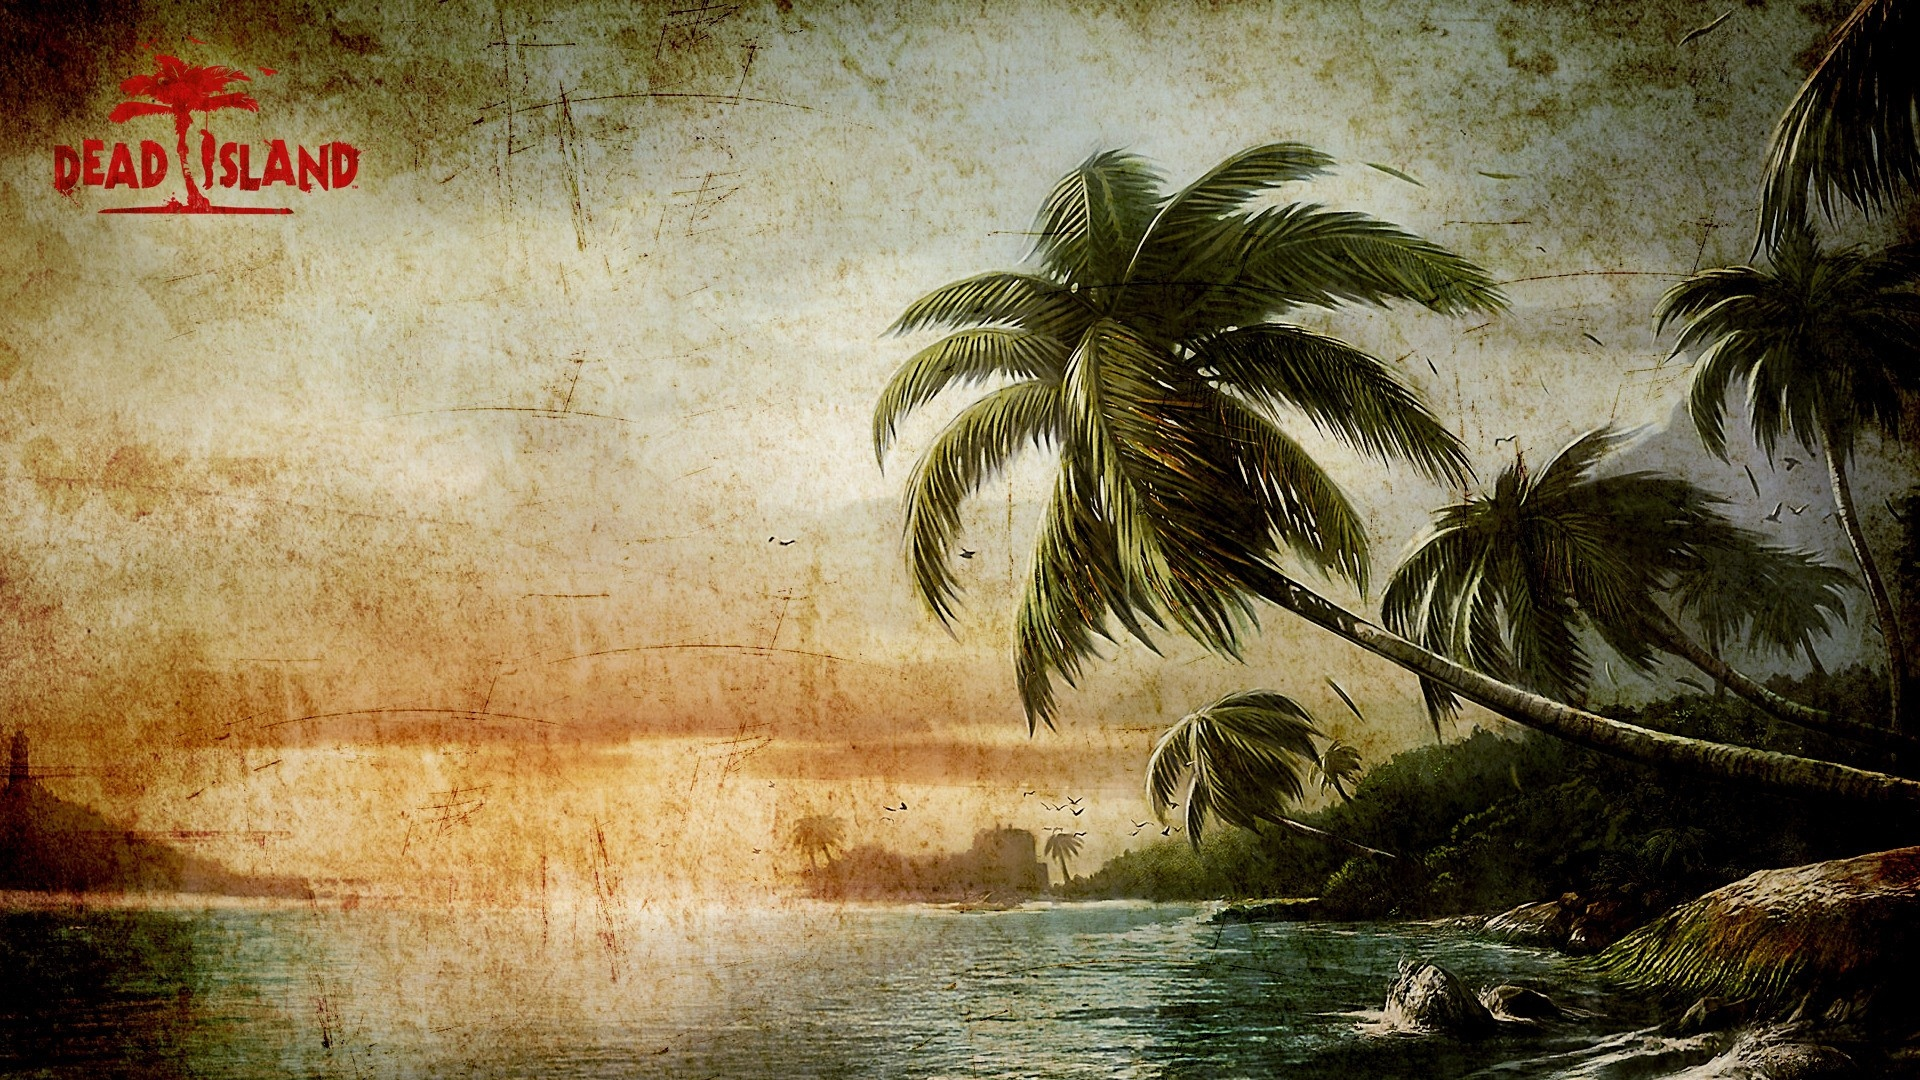 Get The Latest Dead Island Palms Waves News Pictures And Videos Learn All About From Wallpapers4uorg Your Wallpaper